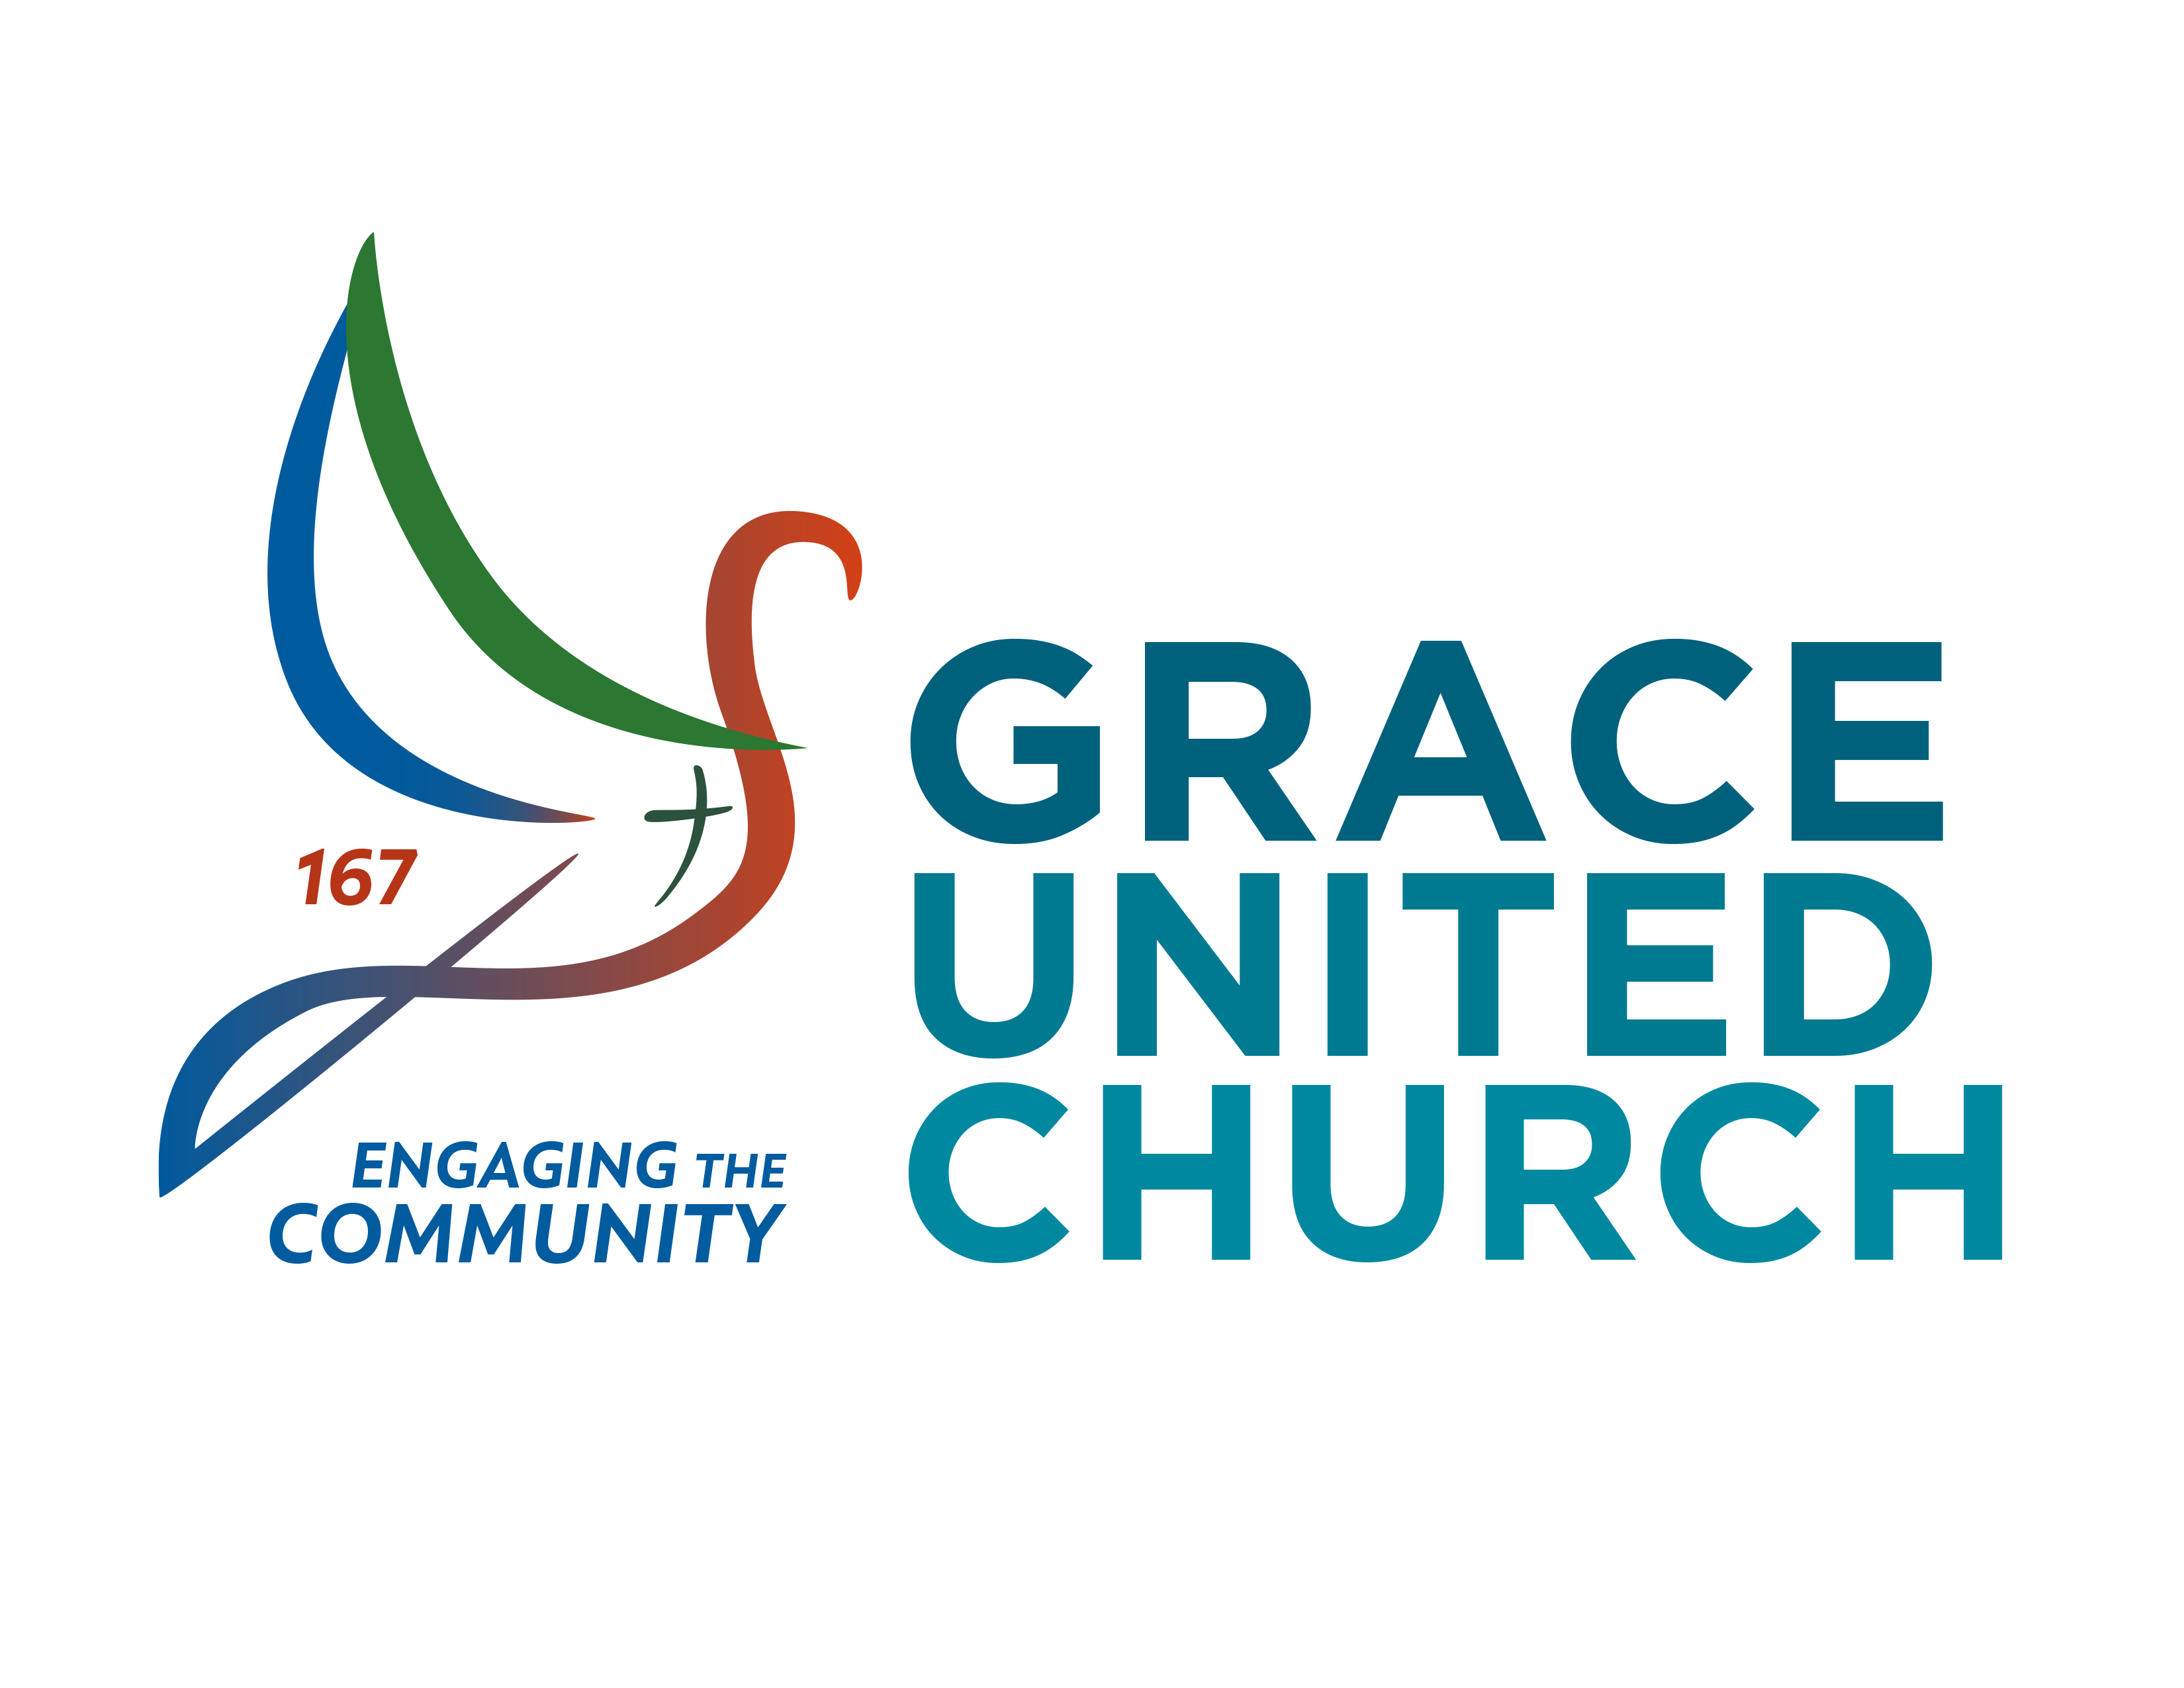 Grace United Church